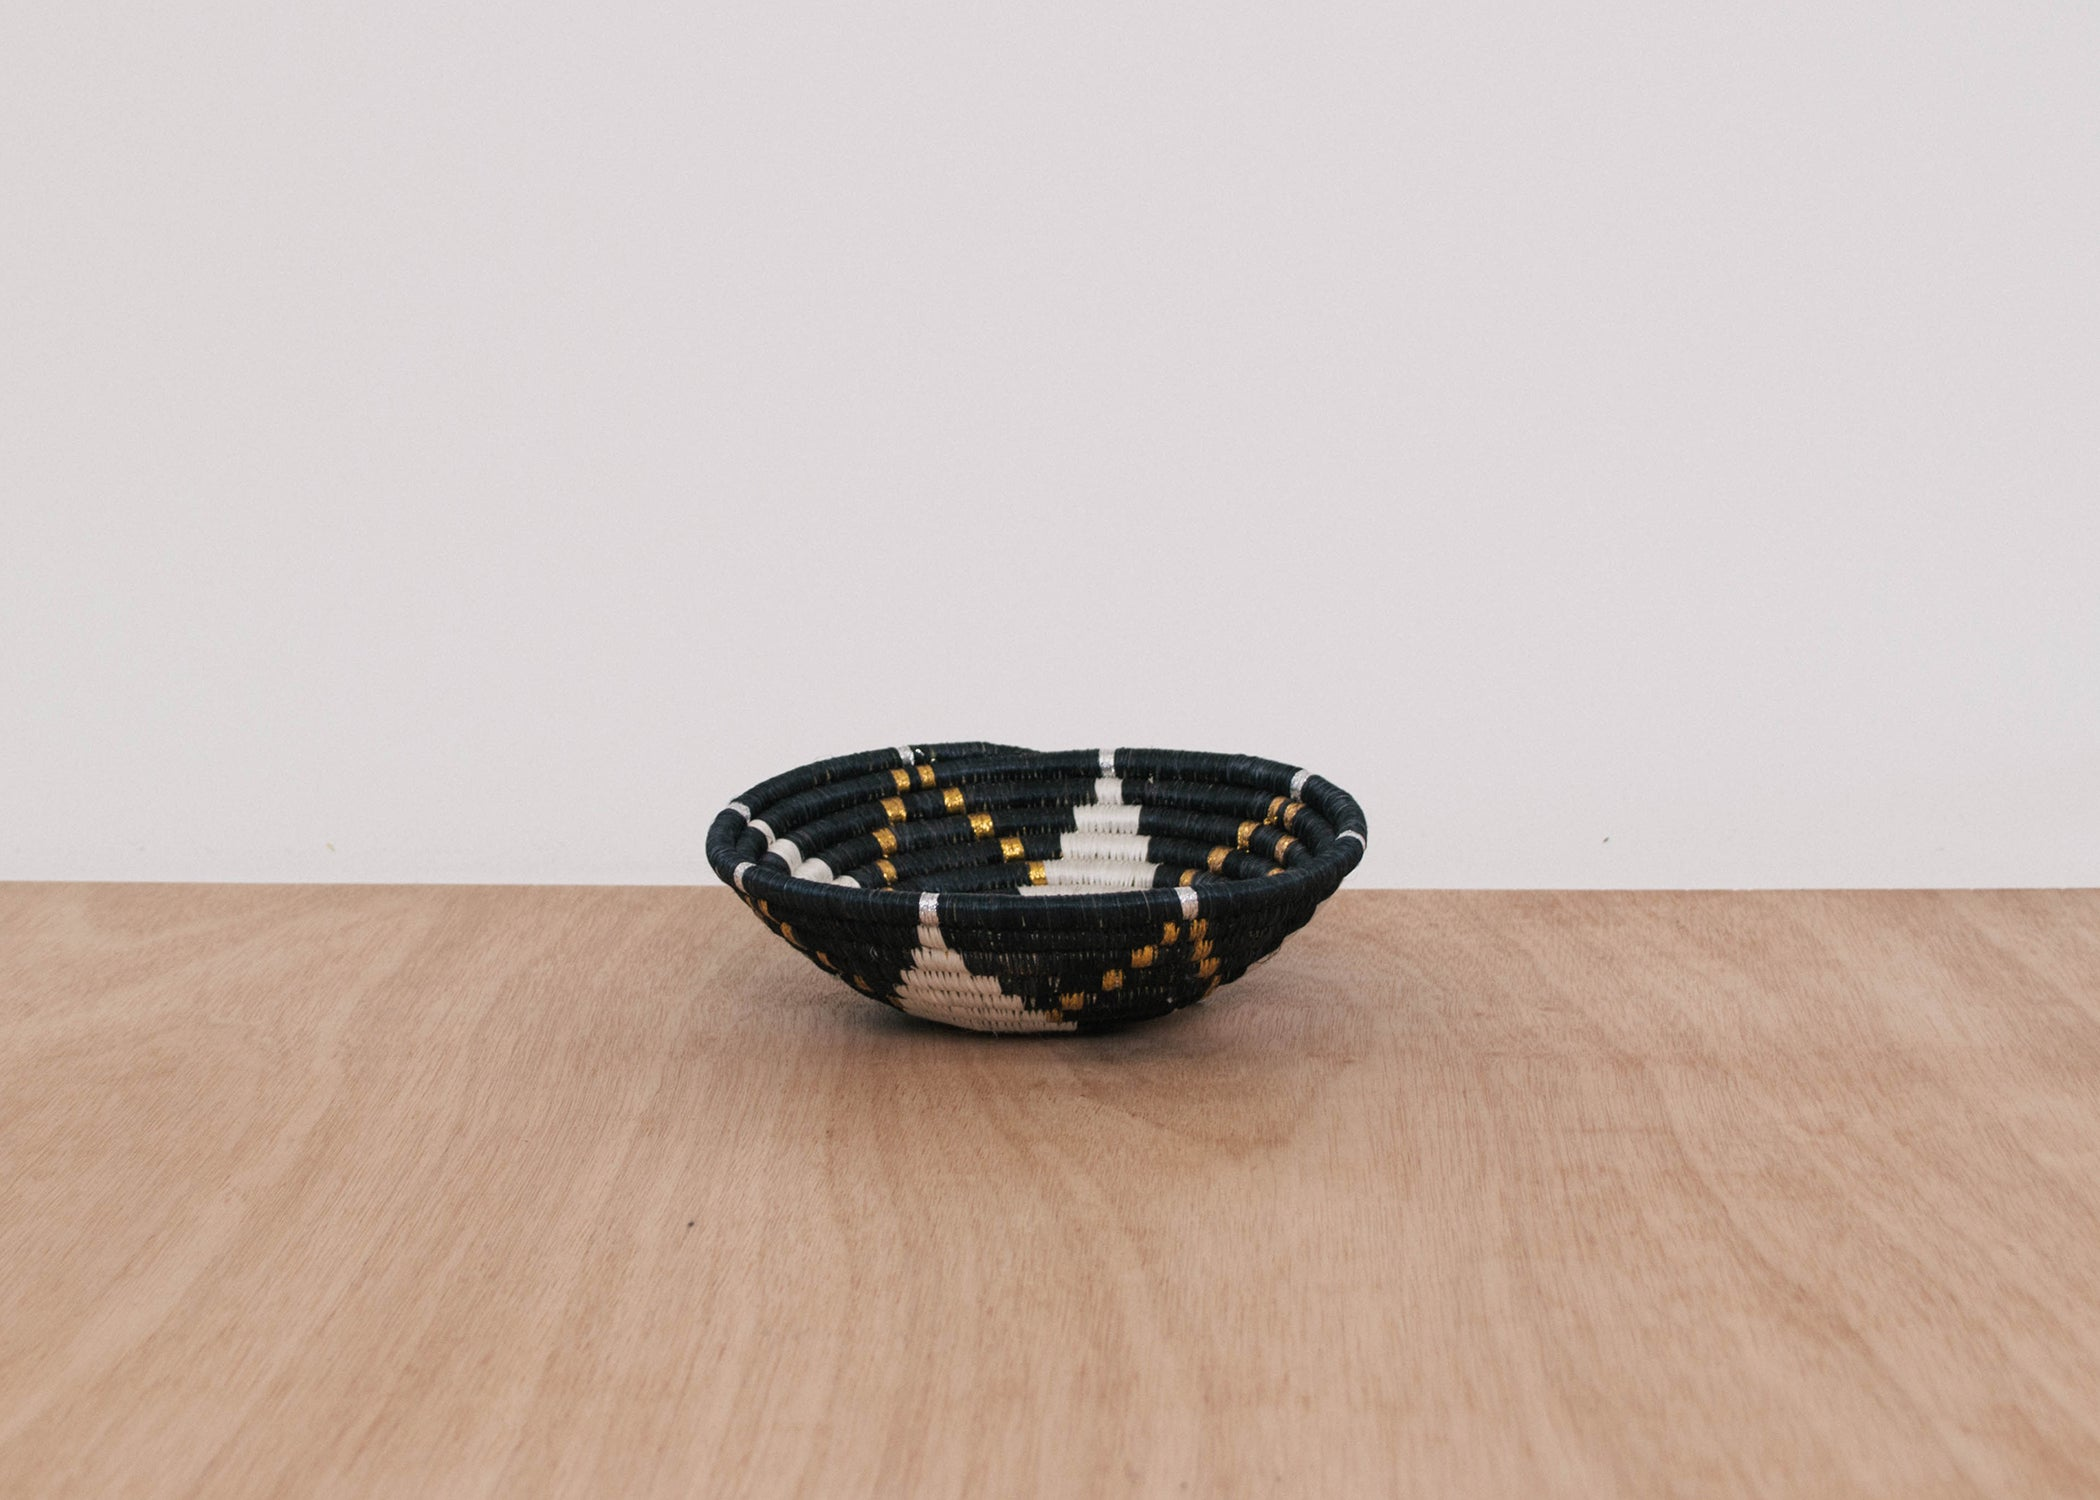 Small Gilded Black Hope Bowl - KAZI - Artisan made high quality home decor and wall art